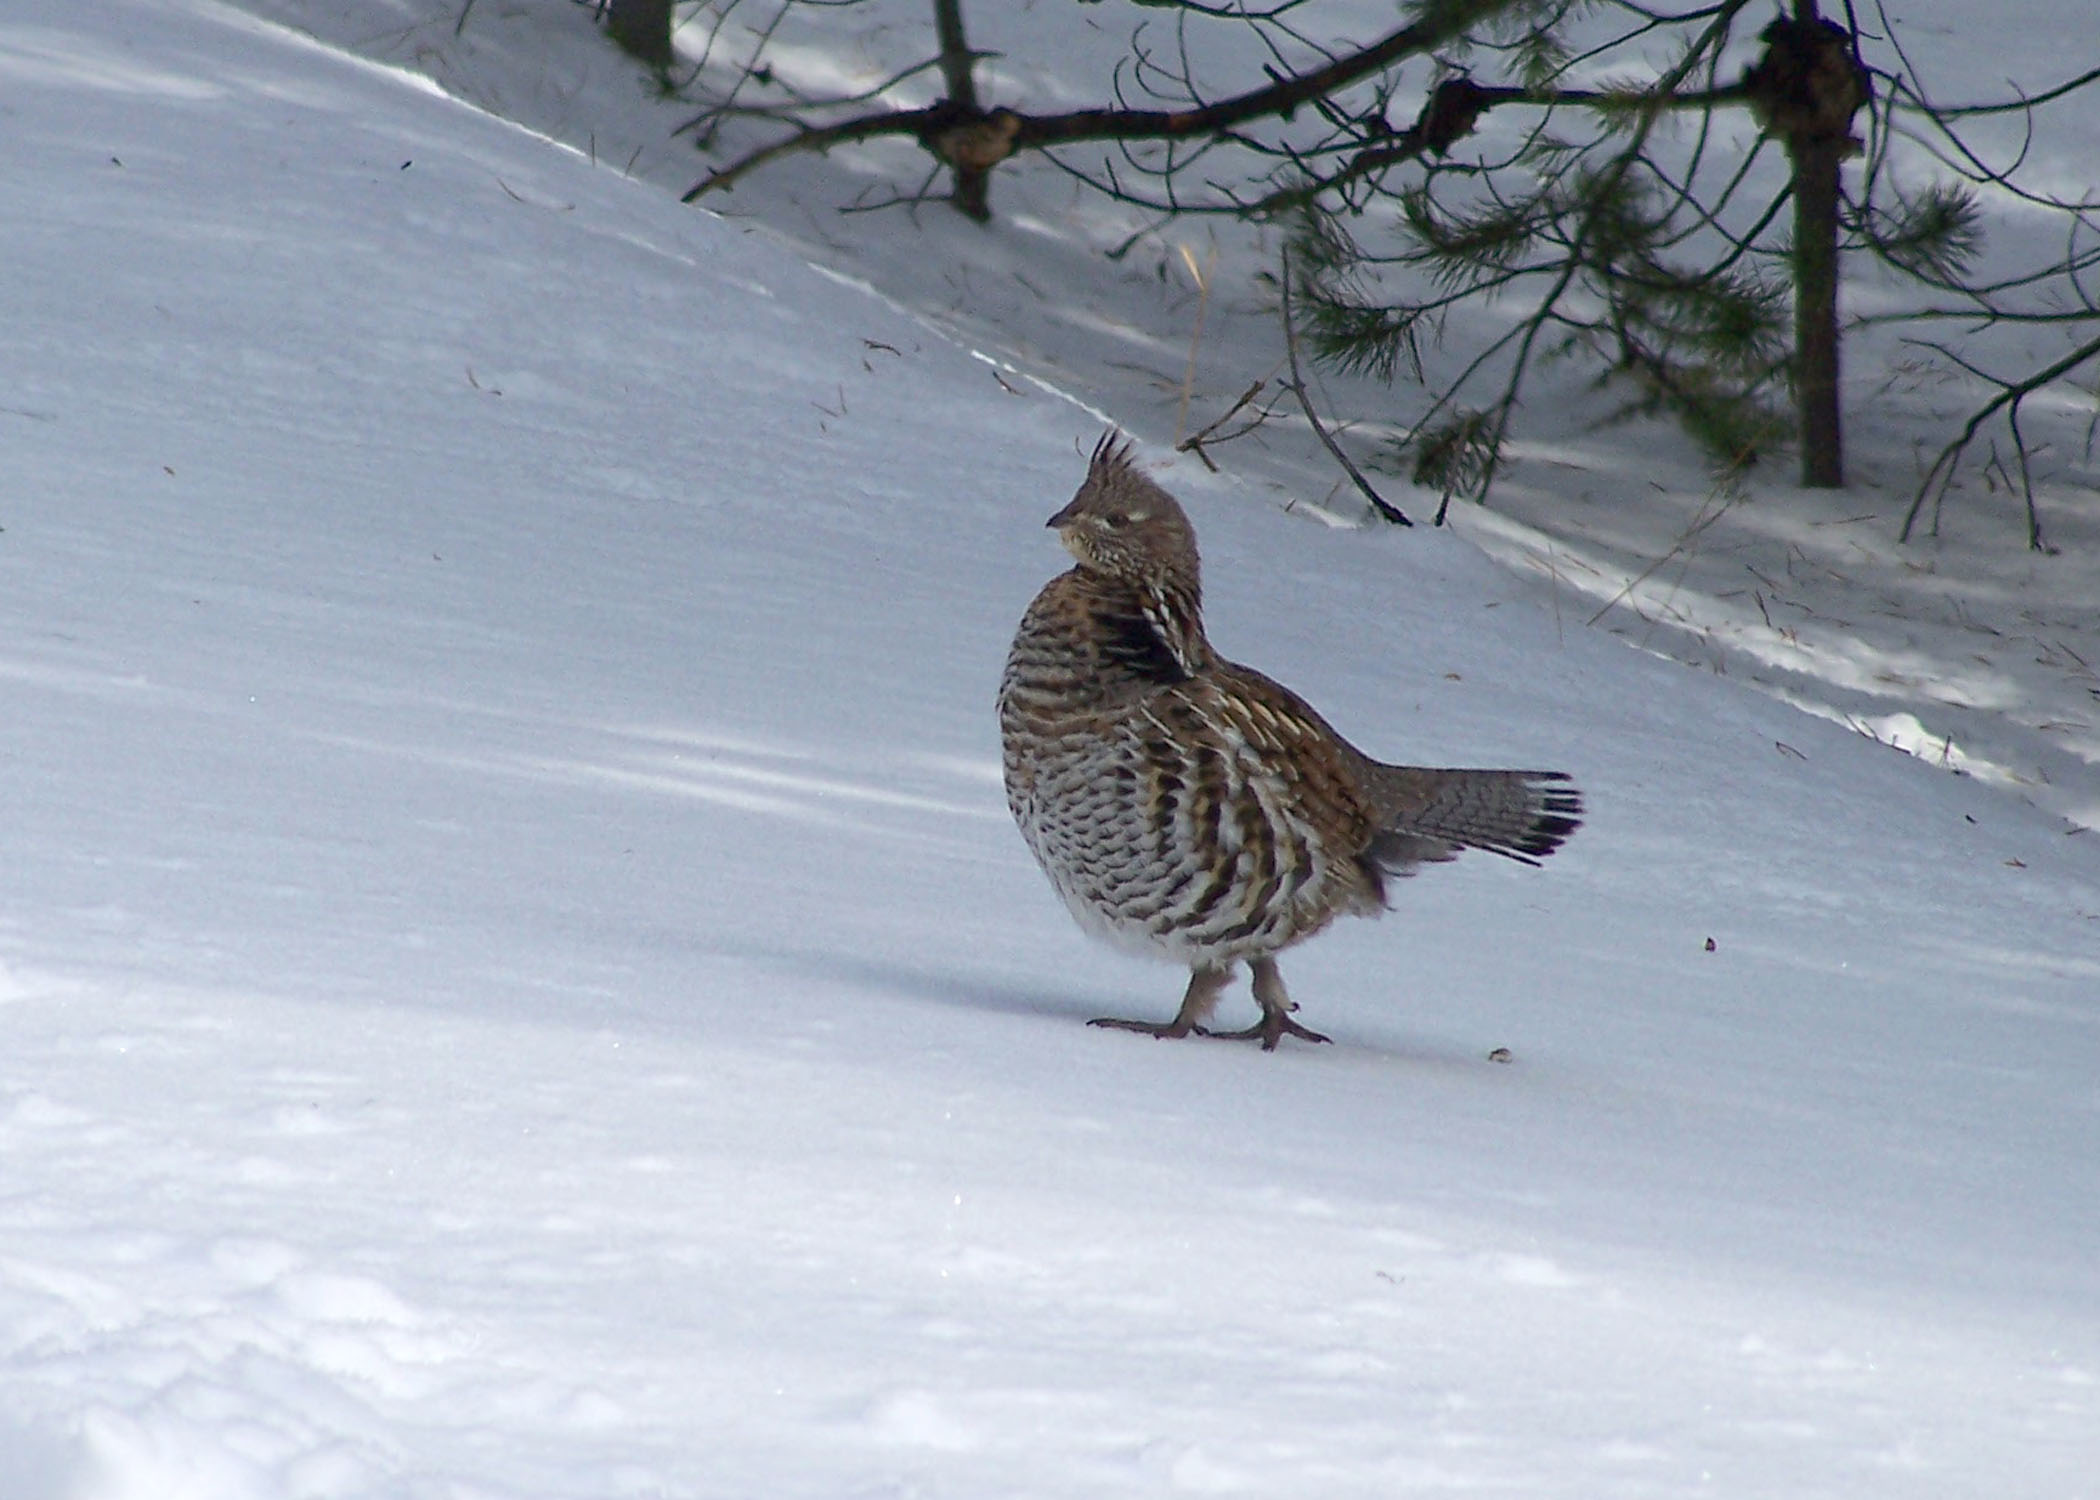 Ruffed grouse in winter